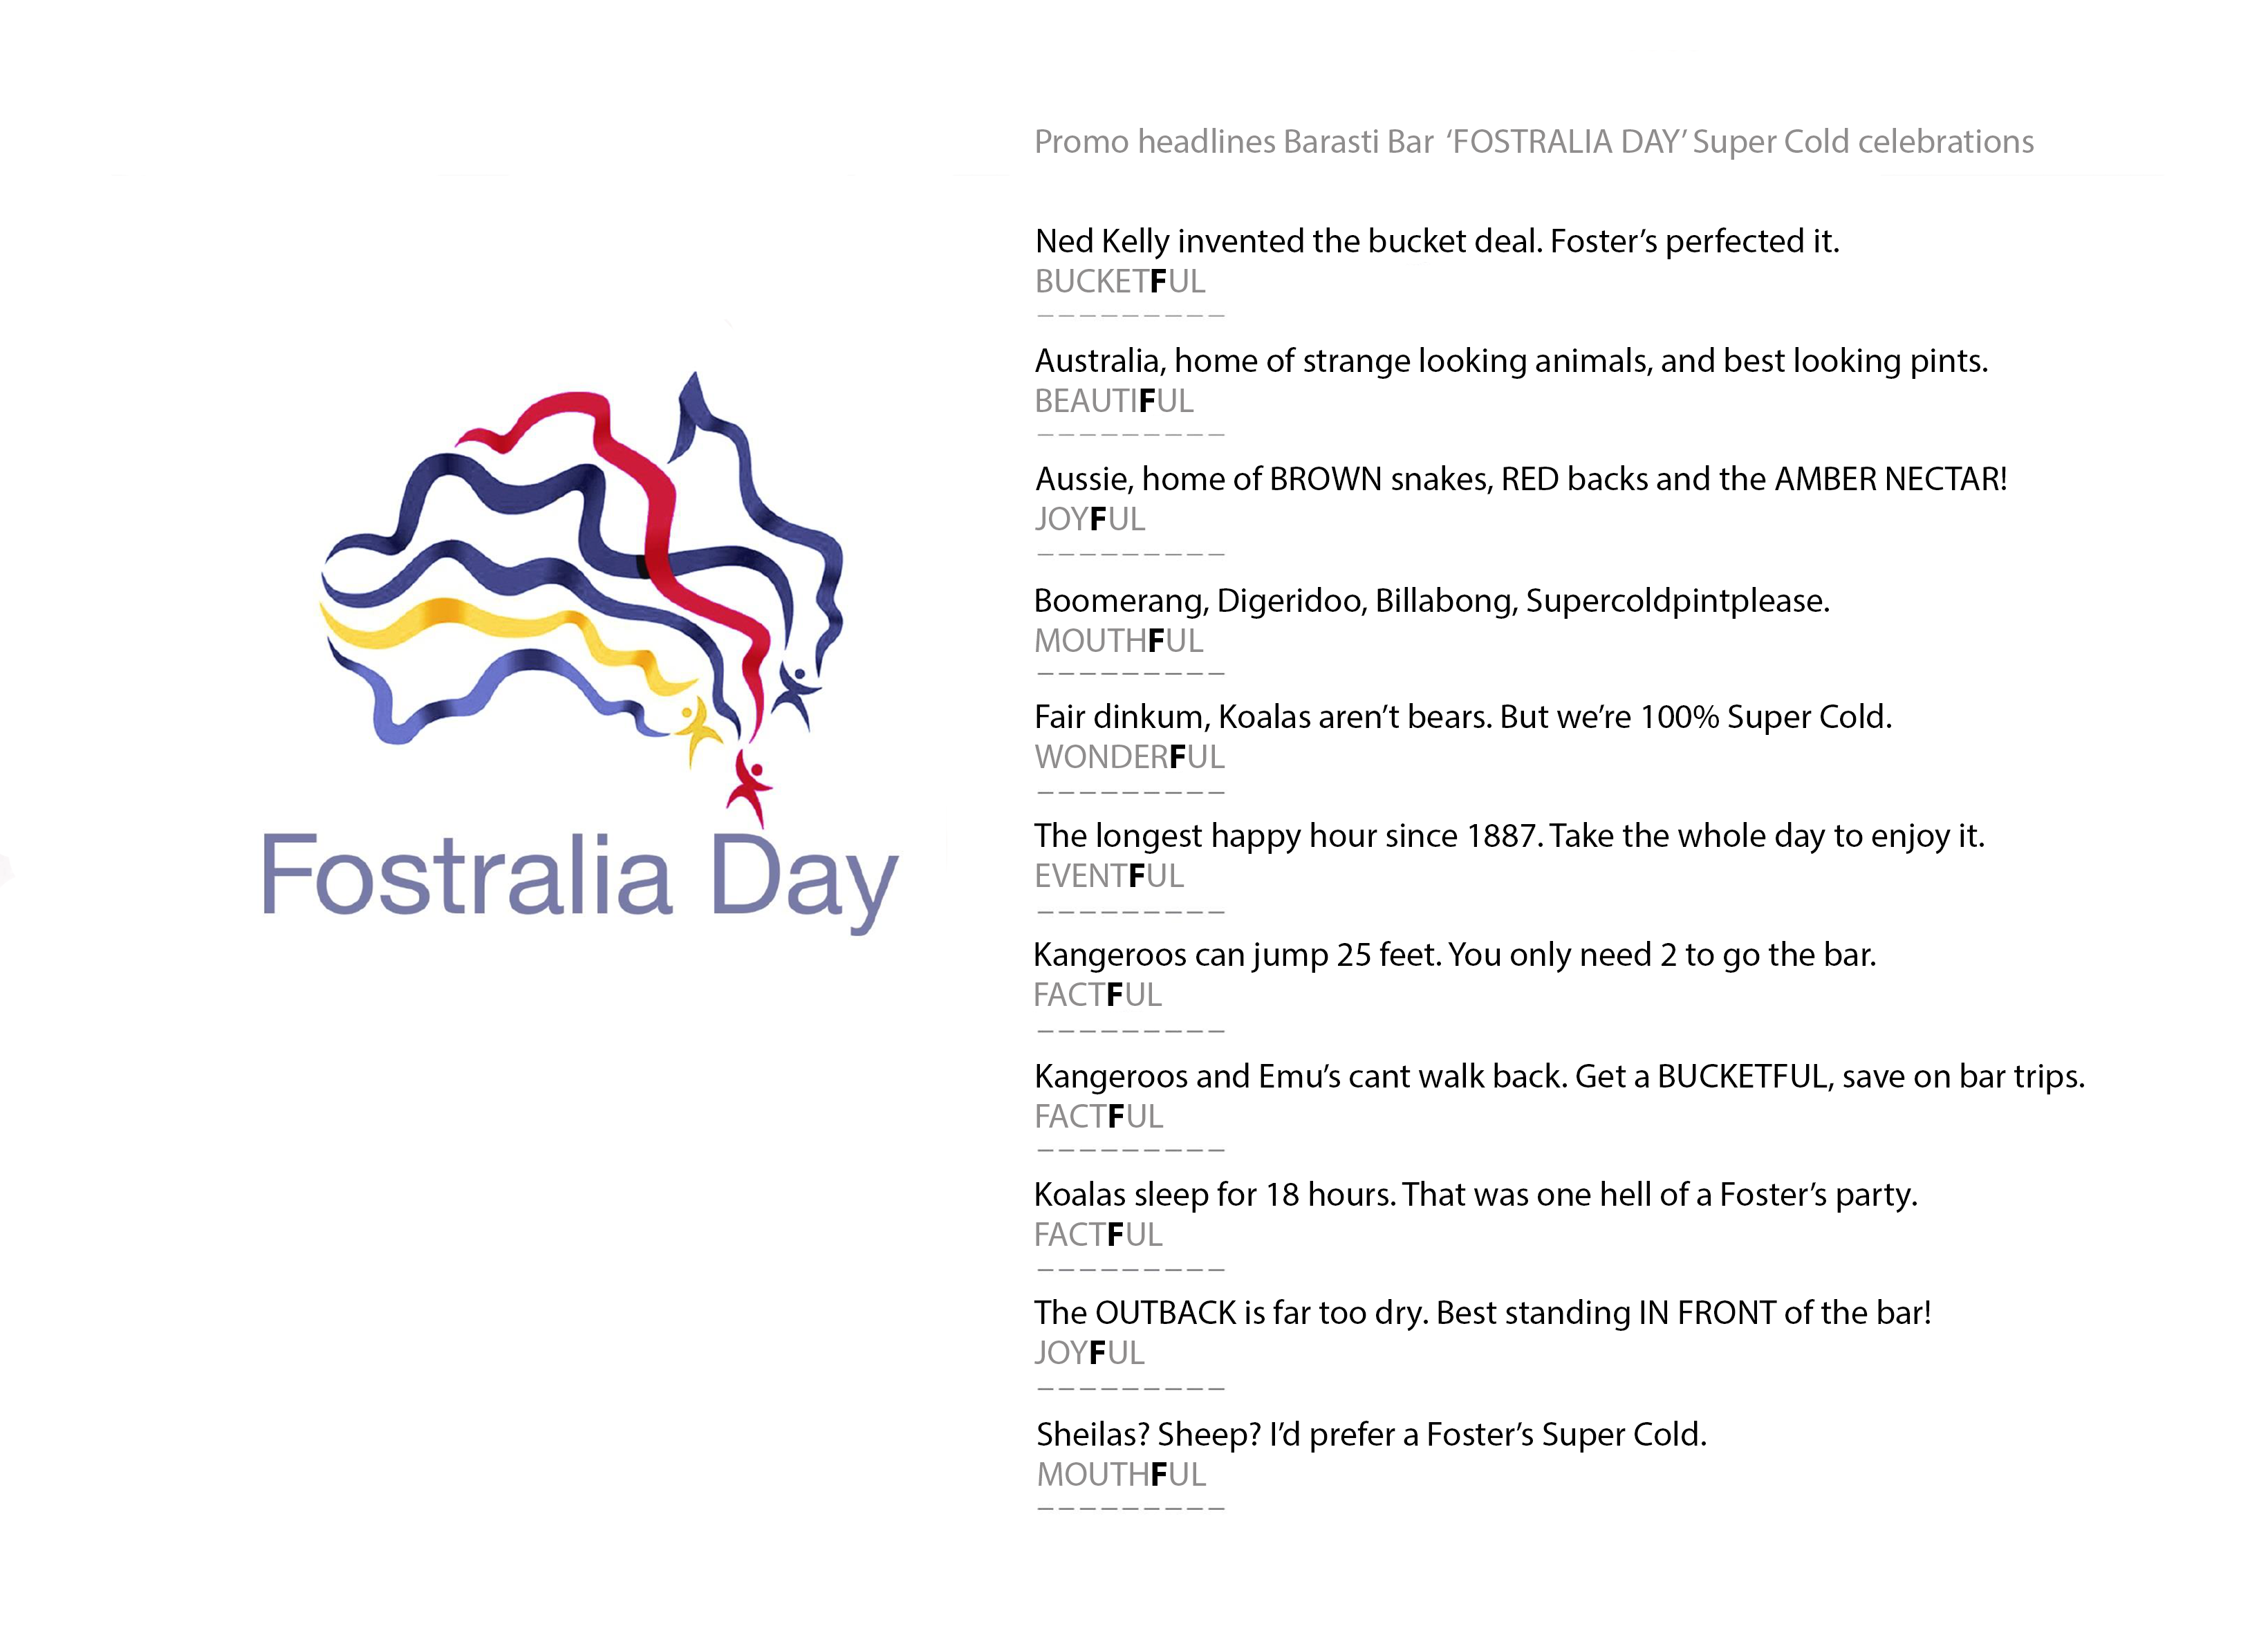 'FOSTRALIA' DAY HEADLINES